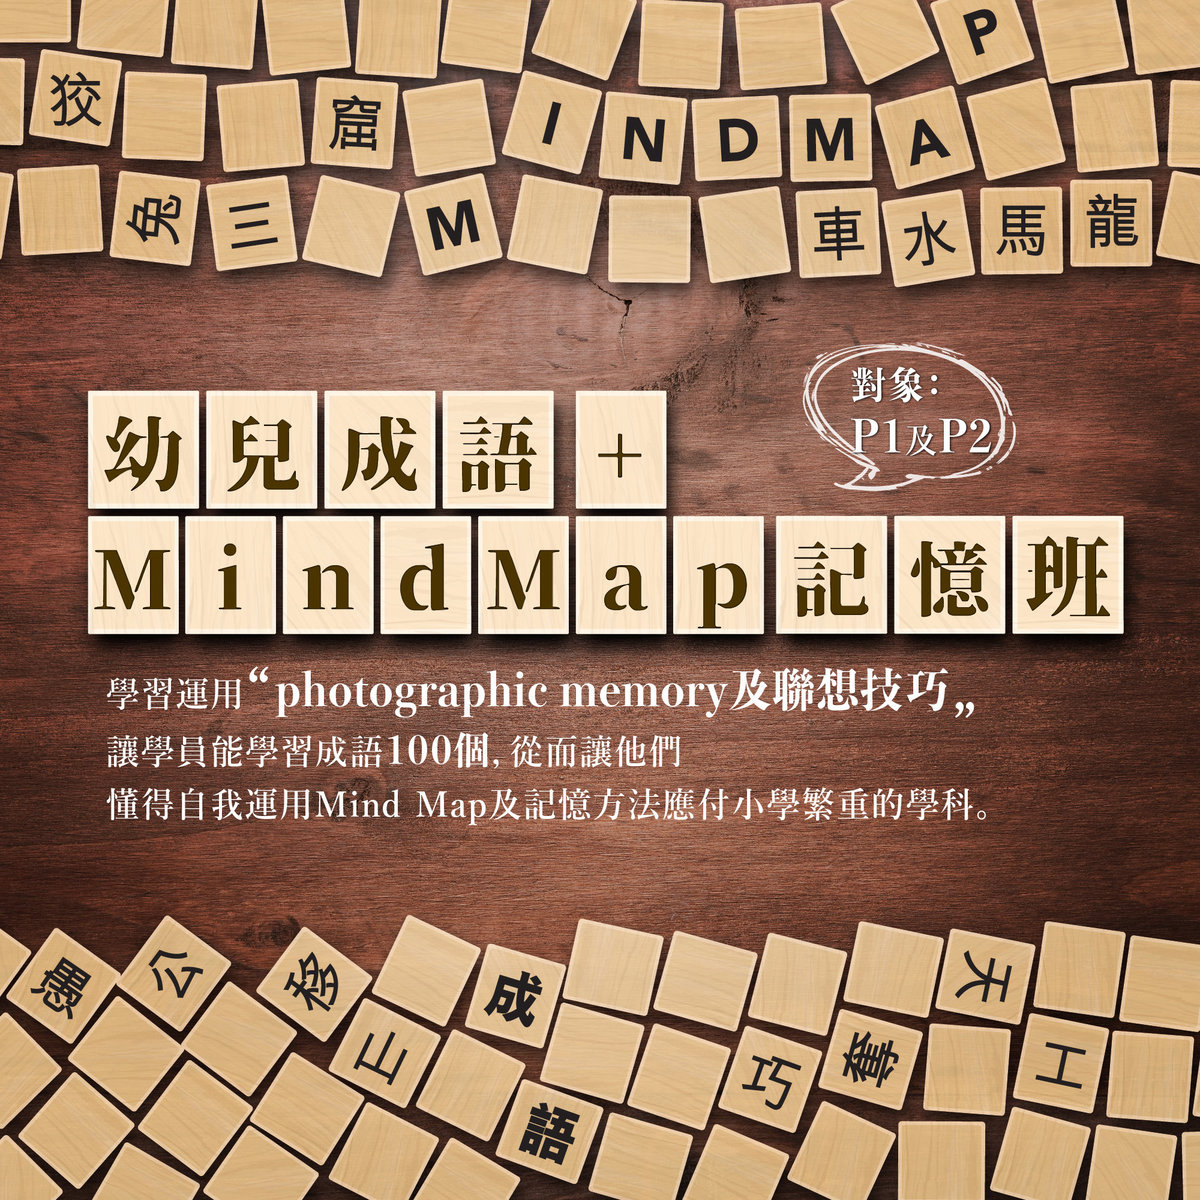 1 Session - Chinese idioms (Chengyu) & Mind Mapping Memory Training (P1-P2)(Sat & Sun)